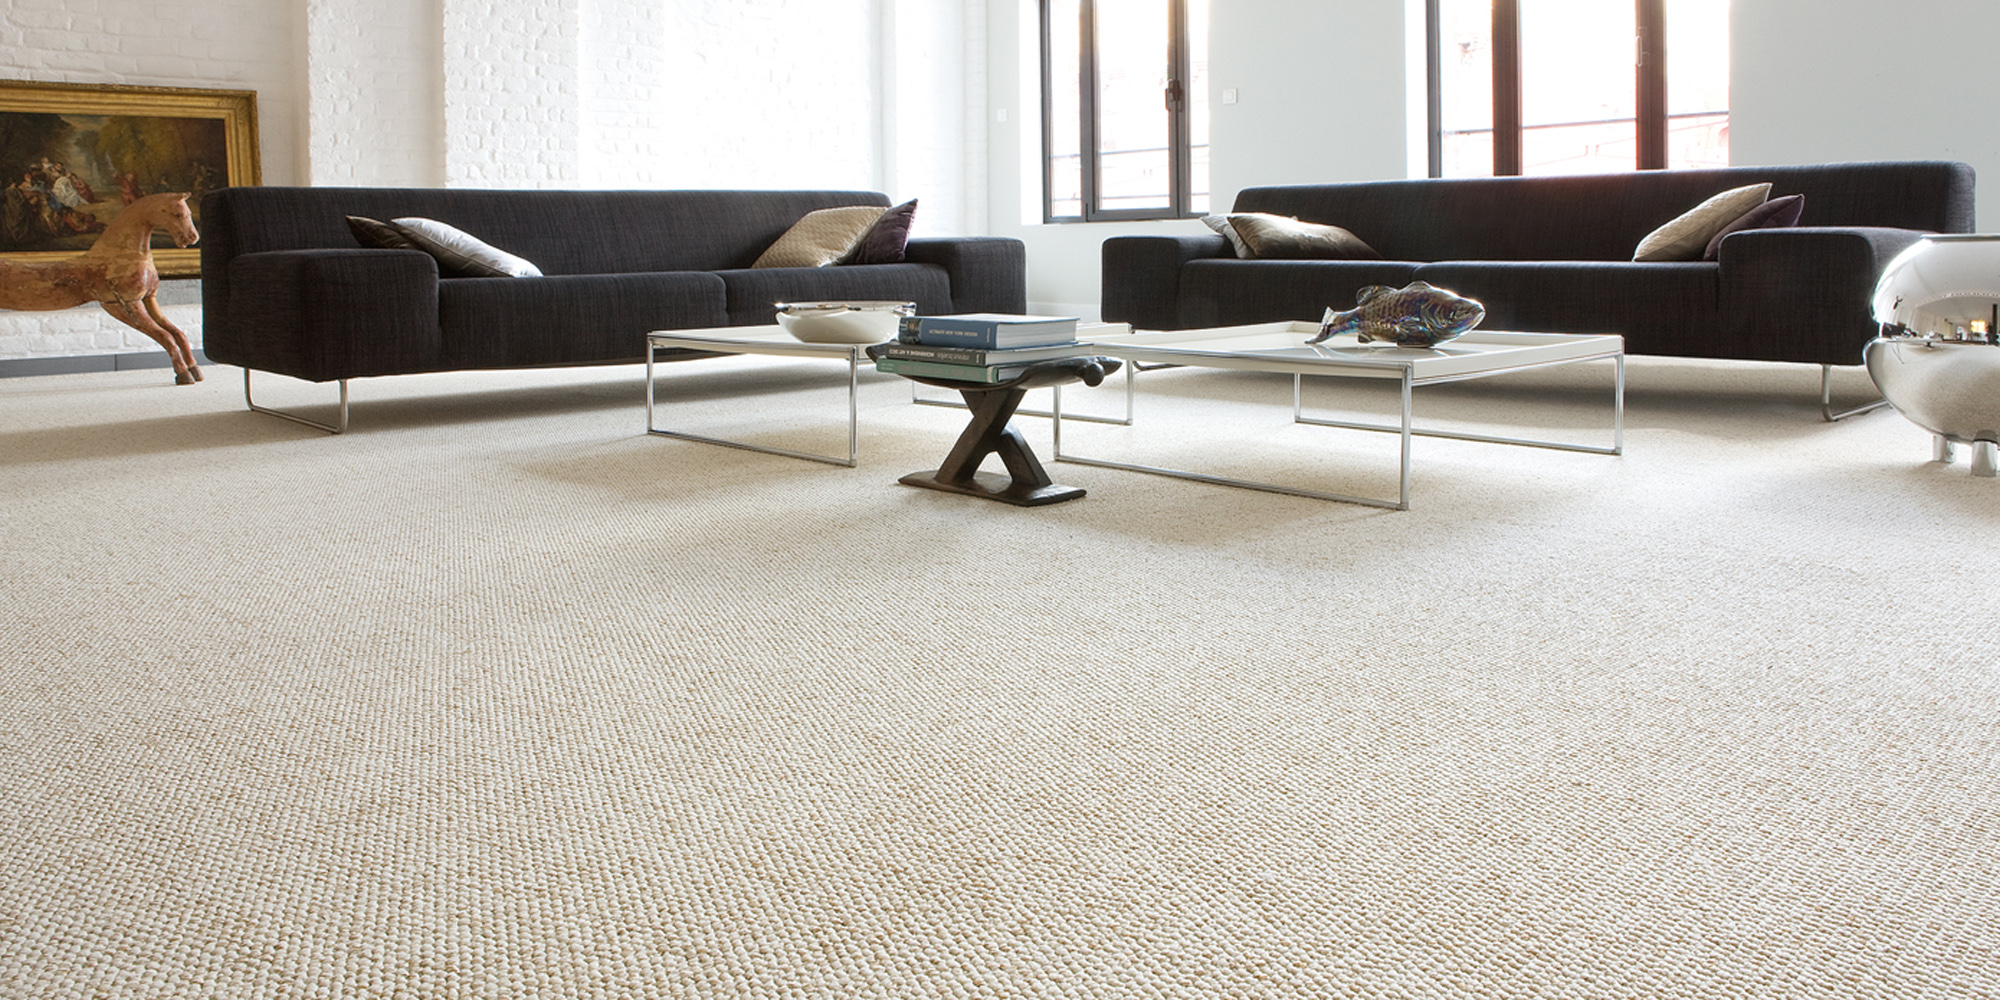 Product-Domestic-Carpet-2